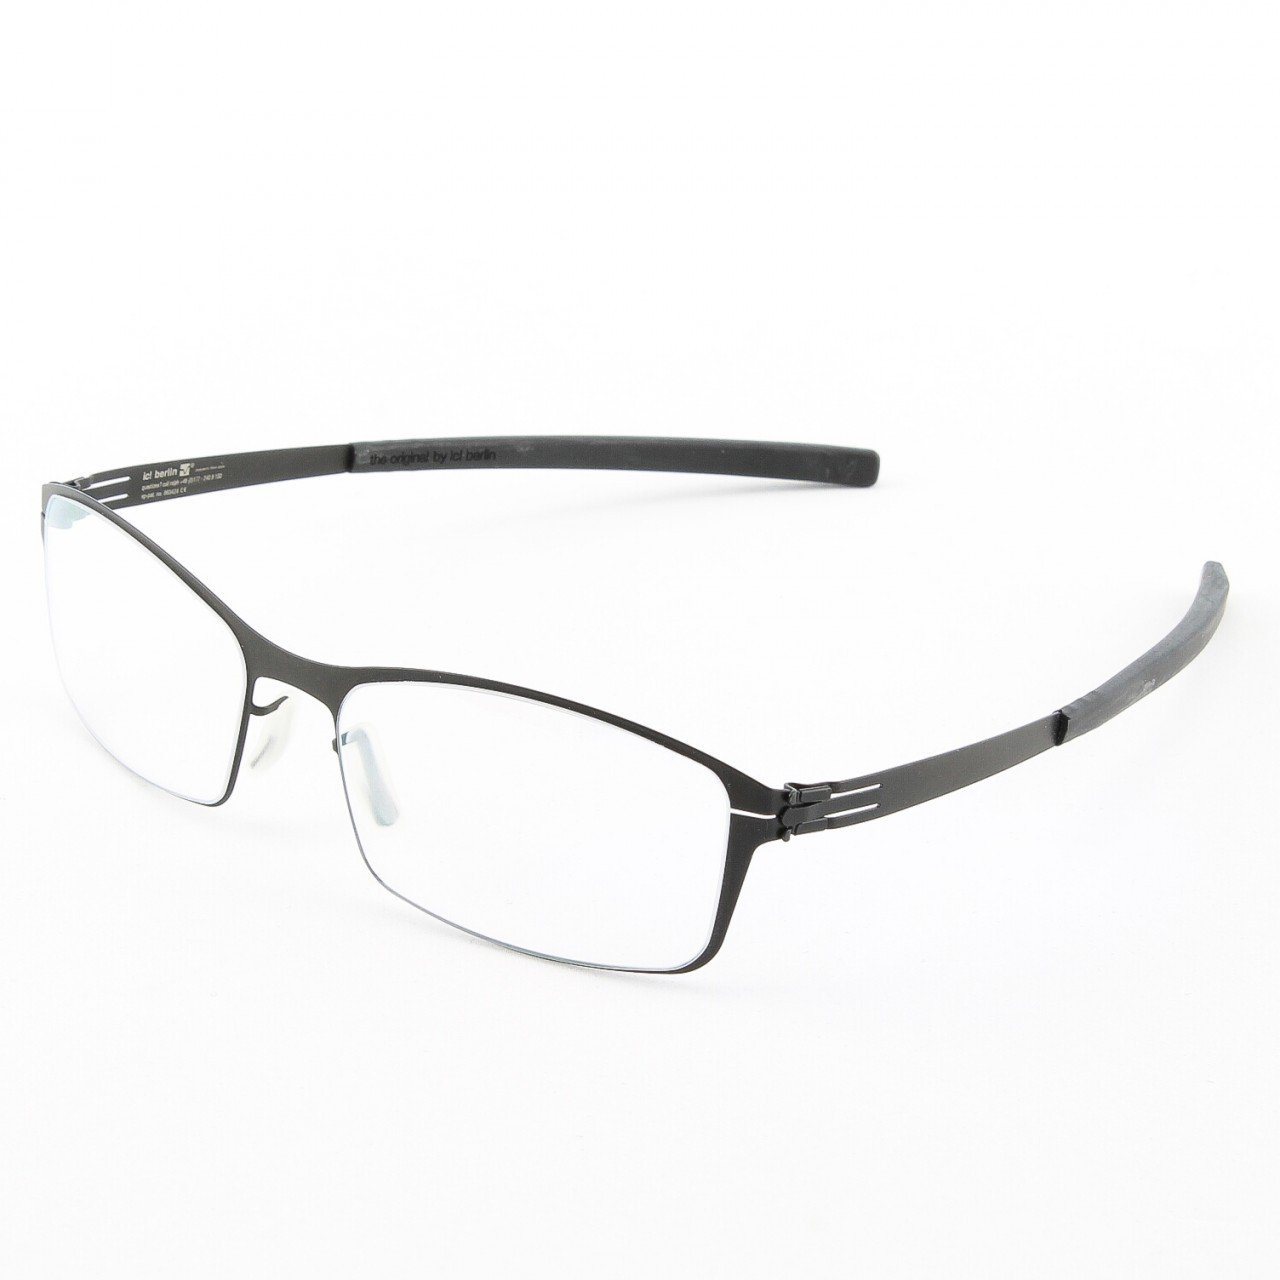 ic! Berlin Displacement Current Eyeglasses Col. Black with Clear Lenses